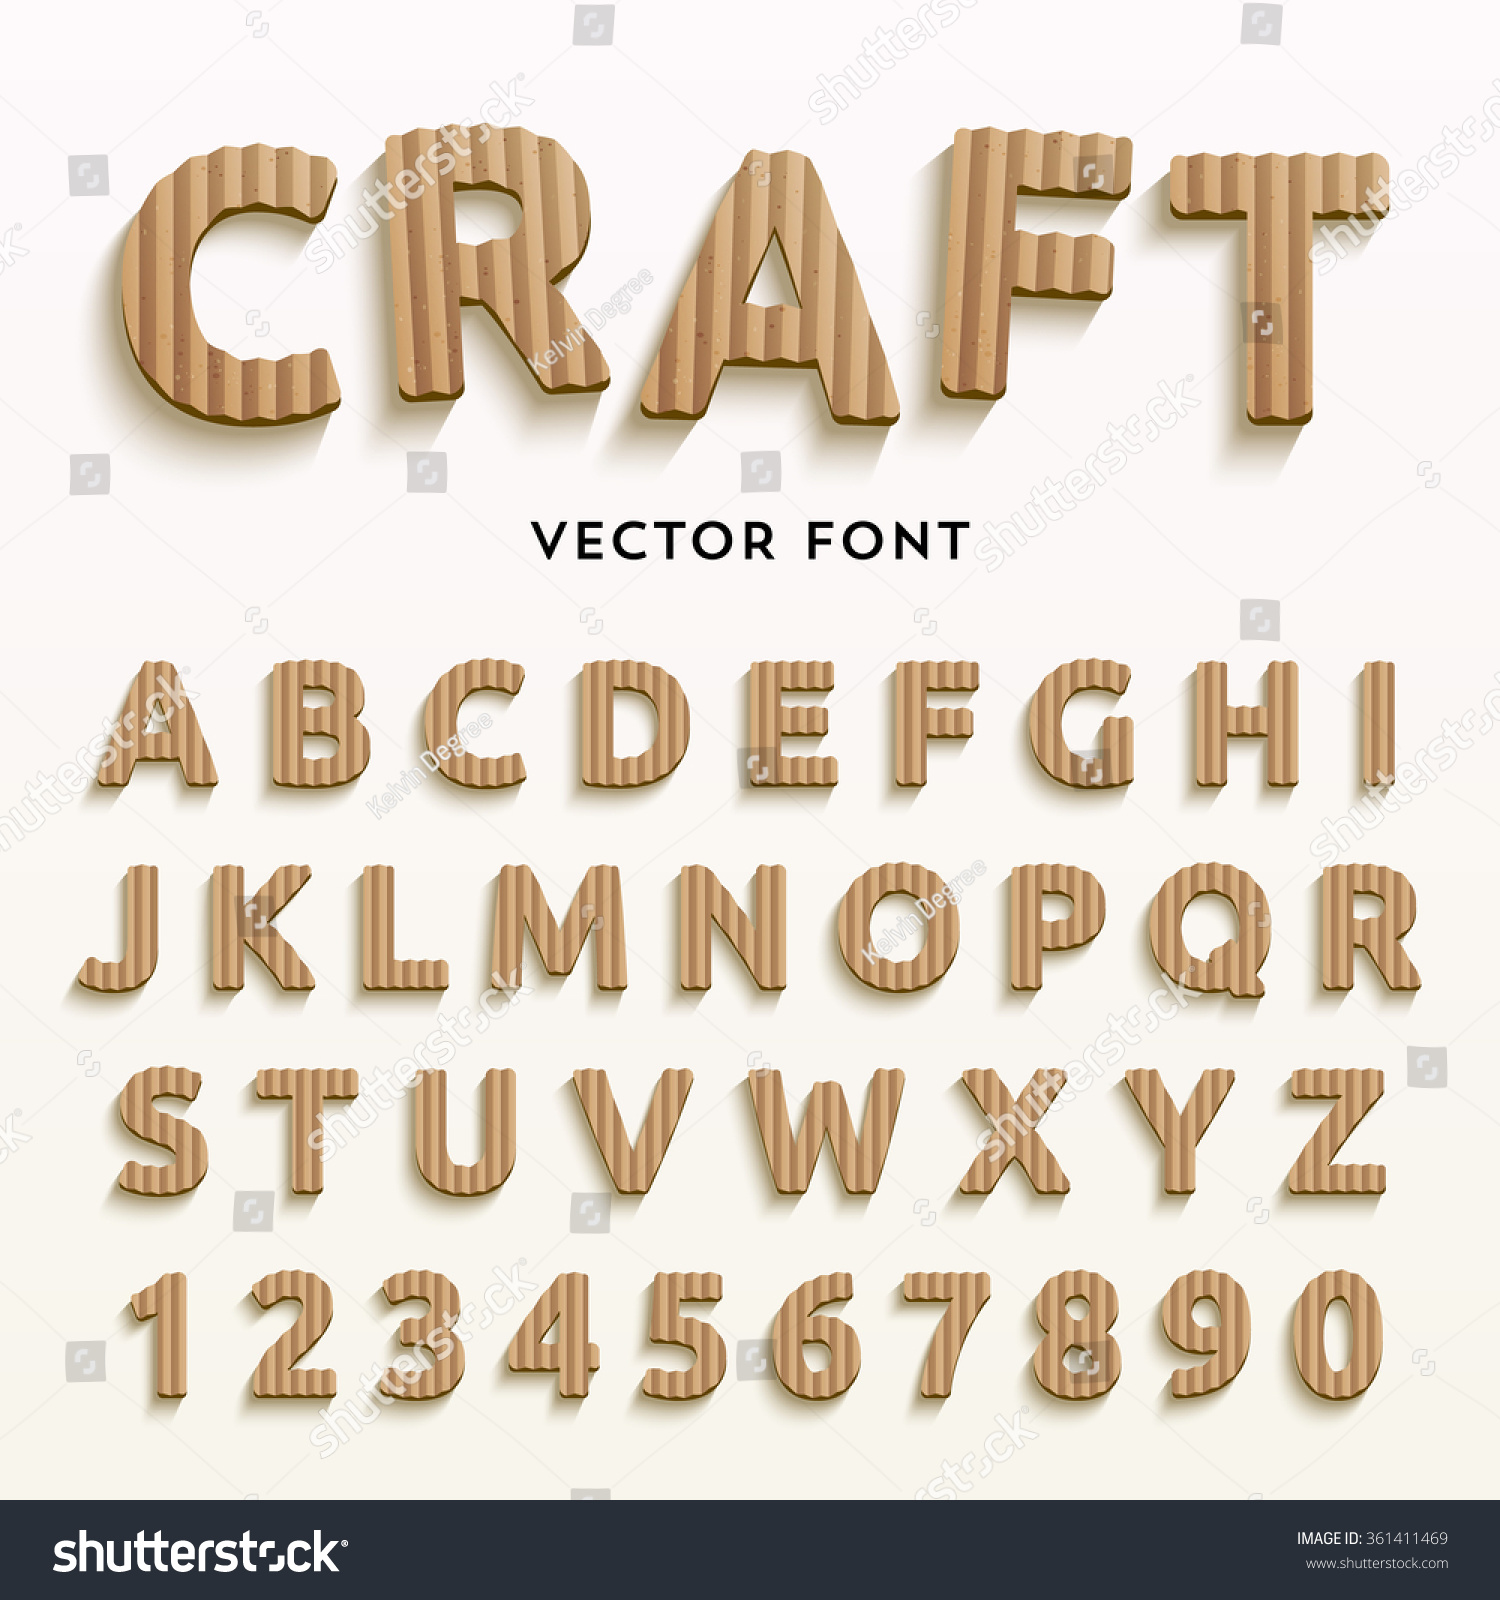 Vector cardboard letters realistic paper style stock for Alphabet letters cardboard